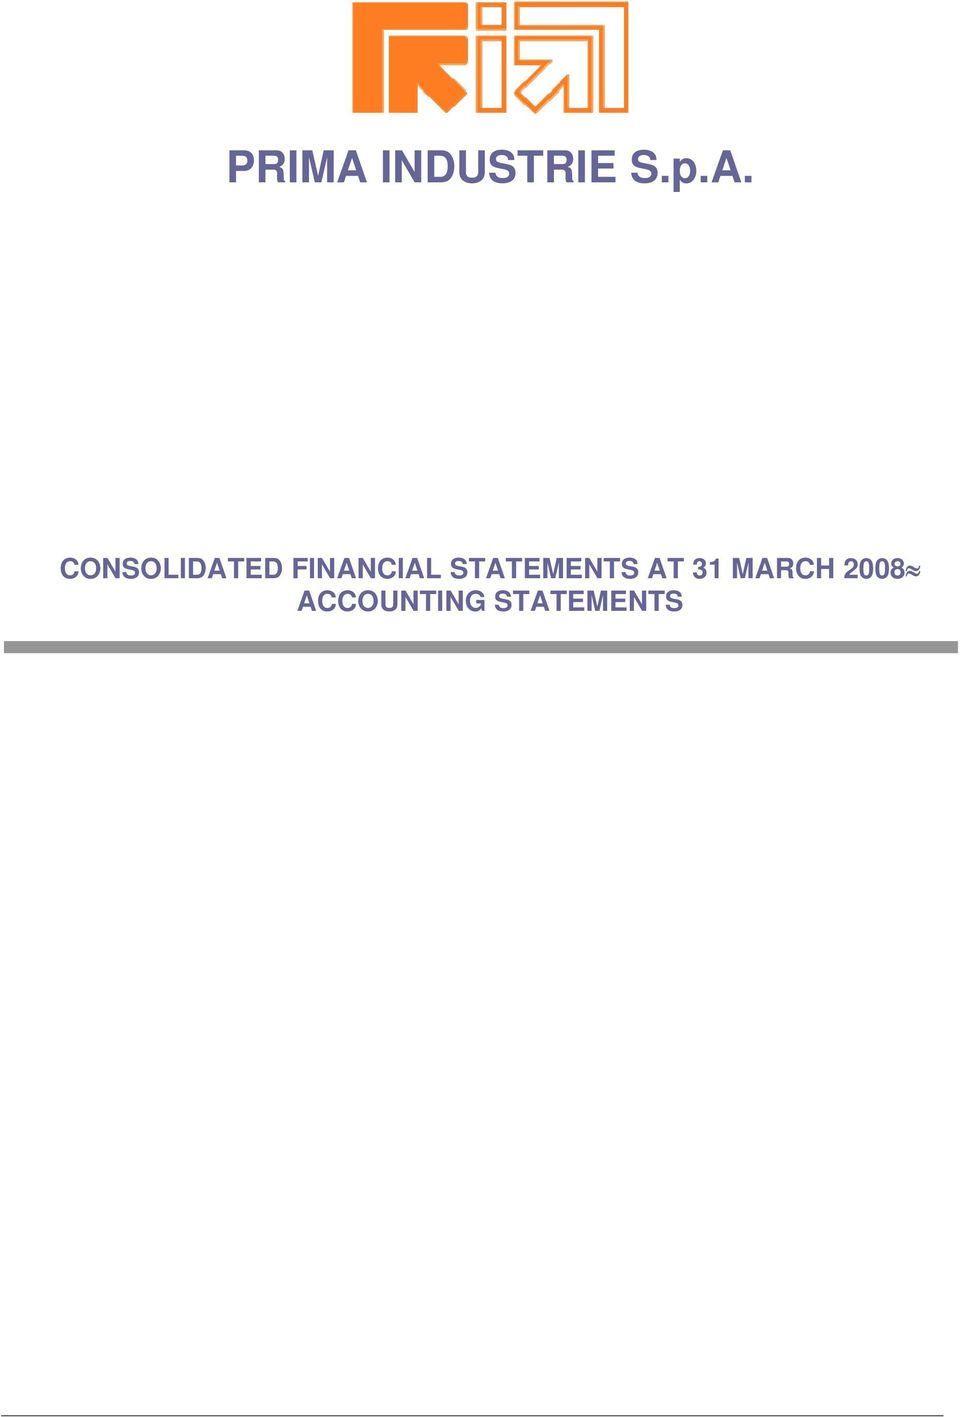 CONSOLIDATED FINANCIAL